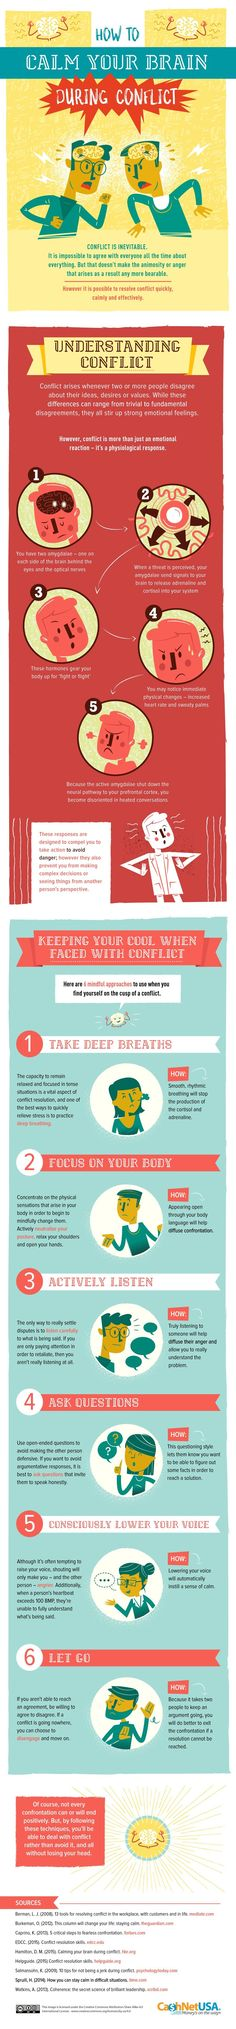 How to Calm Your Brain During Conflict #Infographic #HowTo #Leadership #Management